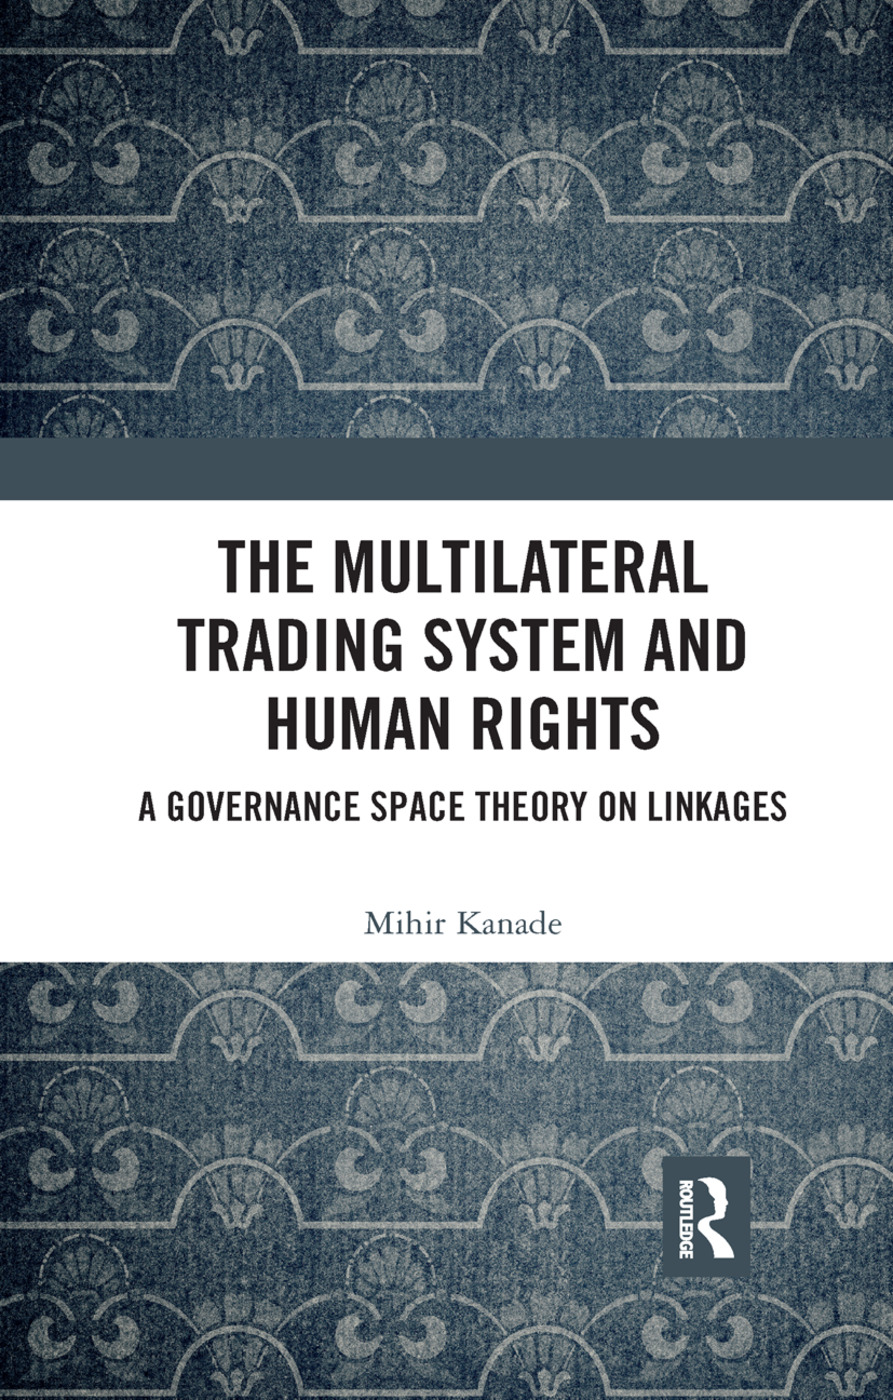 The Multilateral Trading System and Human Rights: A Governance Space Theory on Linkages book cover